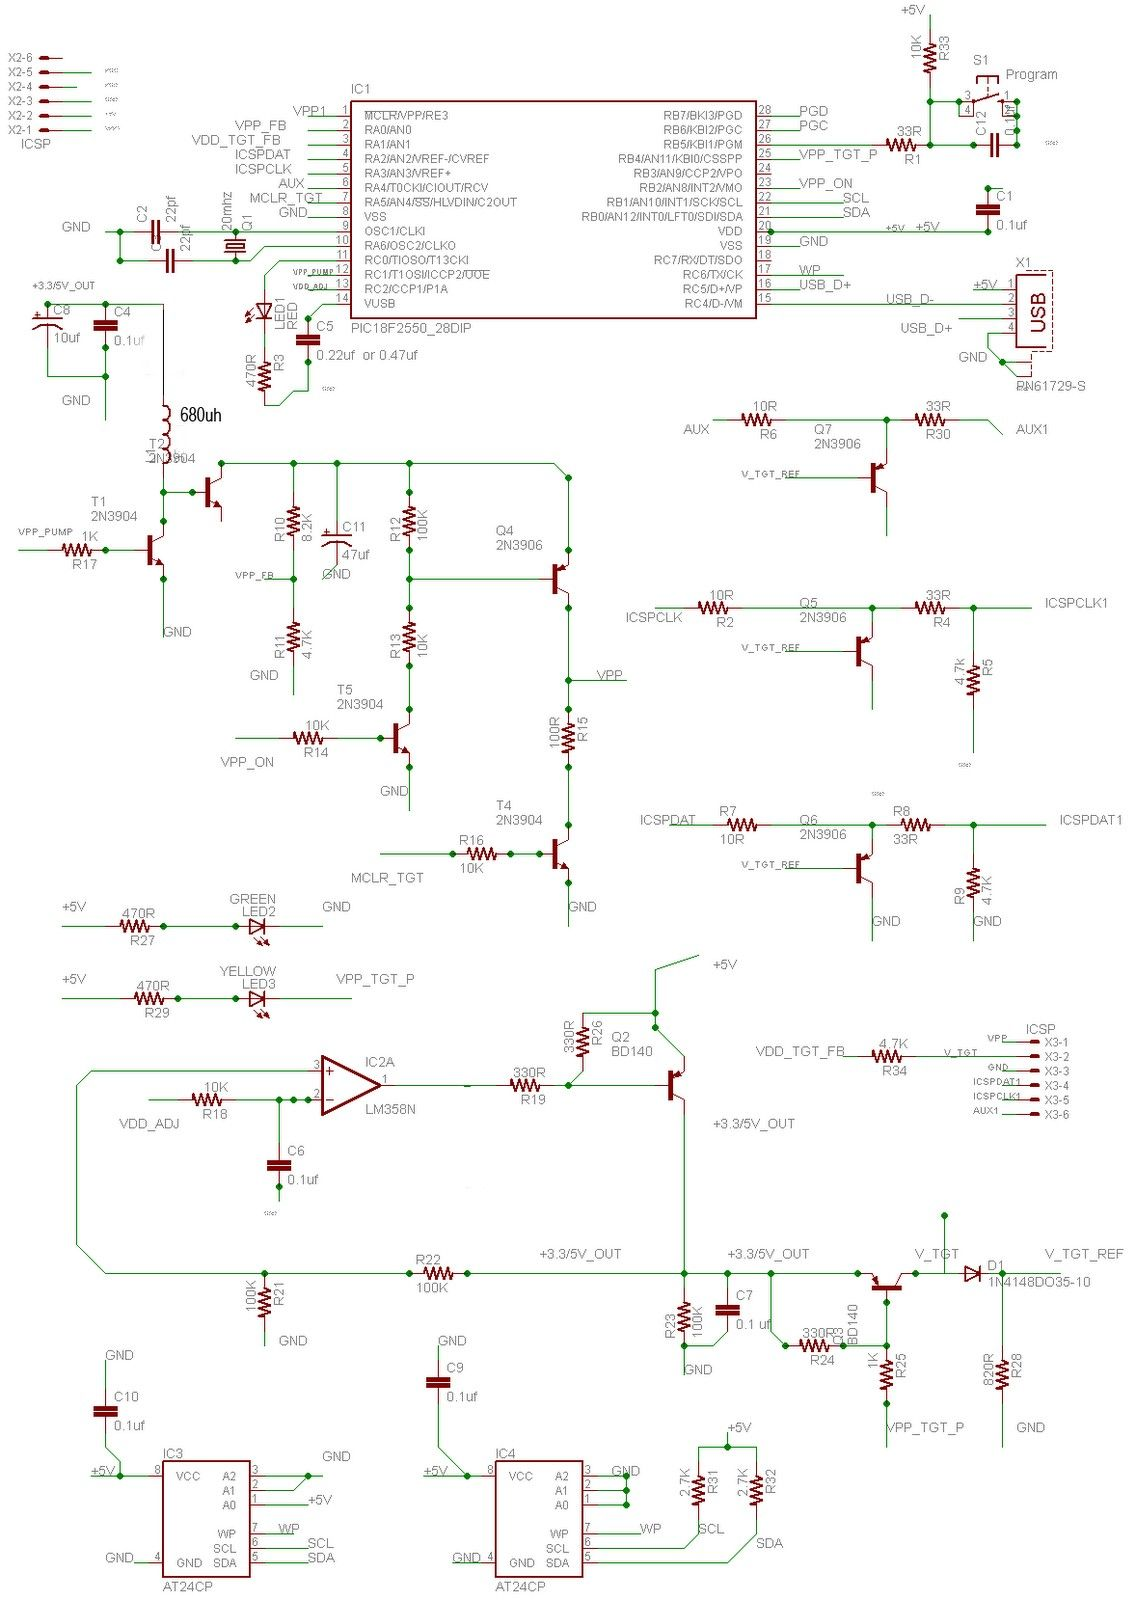 Pickit 3 Schematics Inspirational In 2020 Inspirational Images Relatable Inspiration